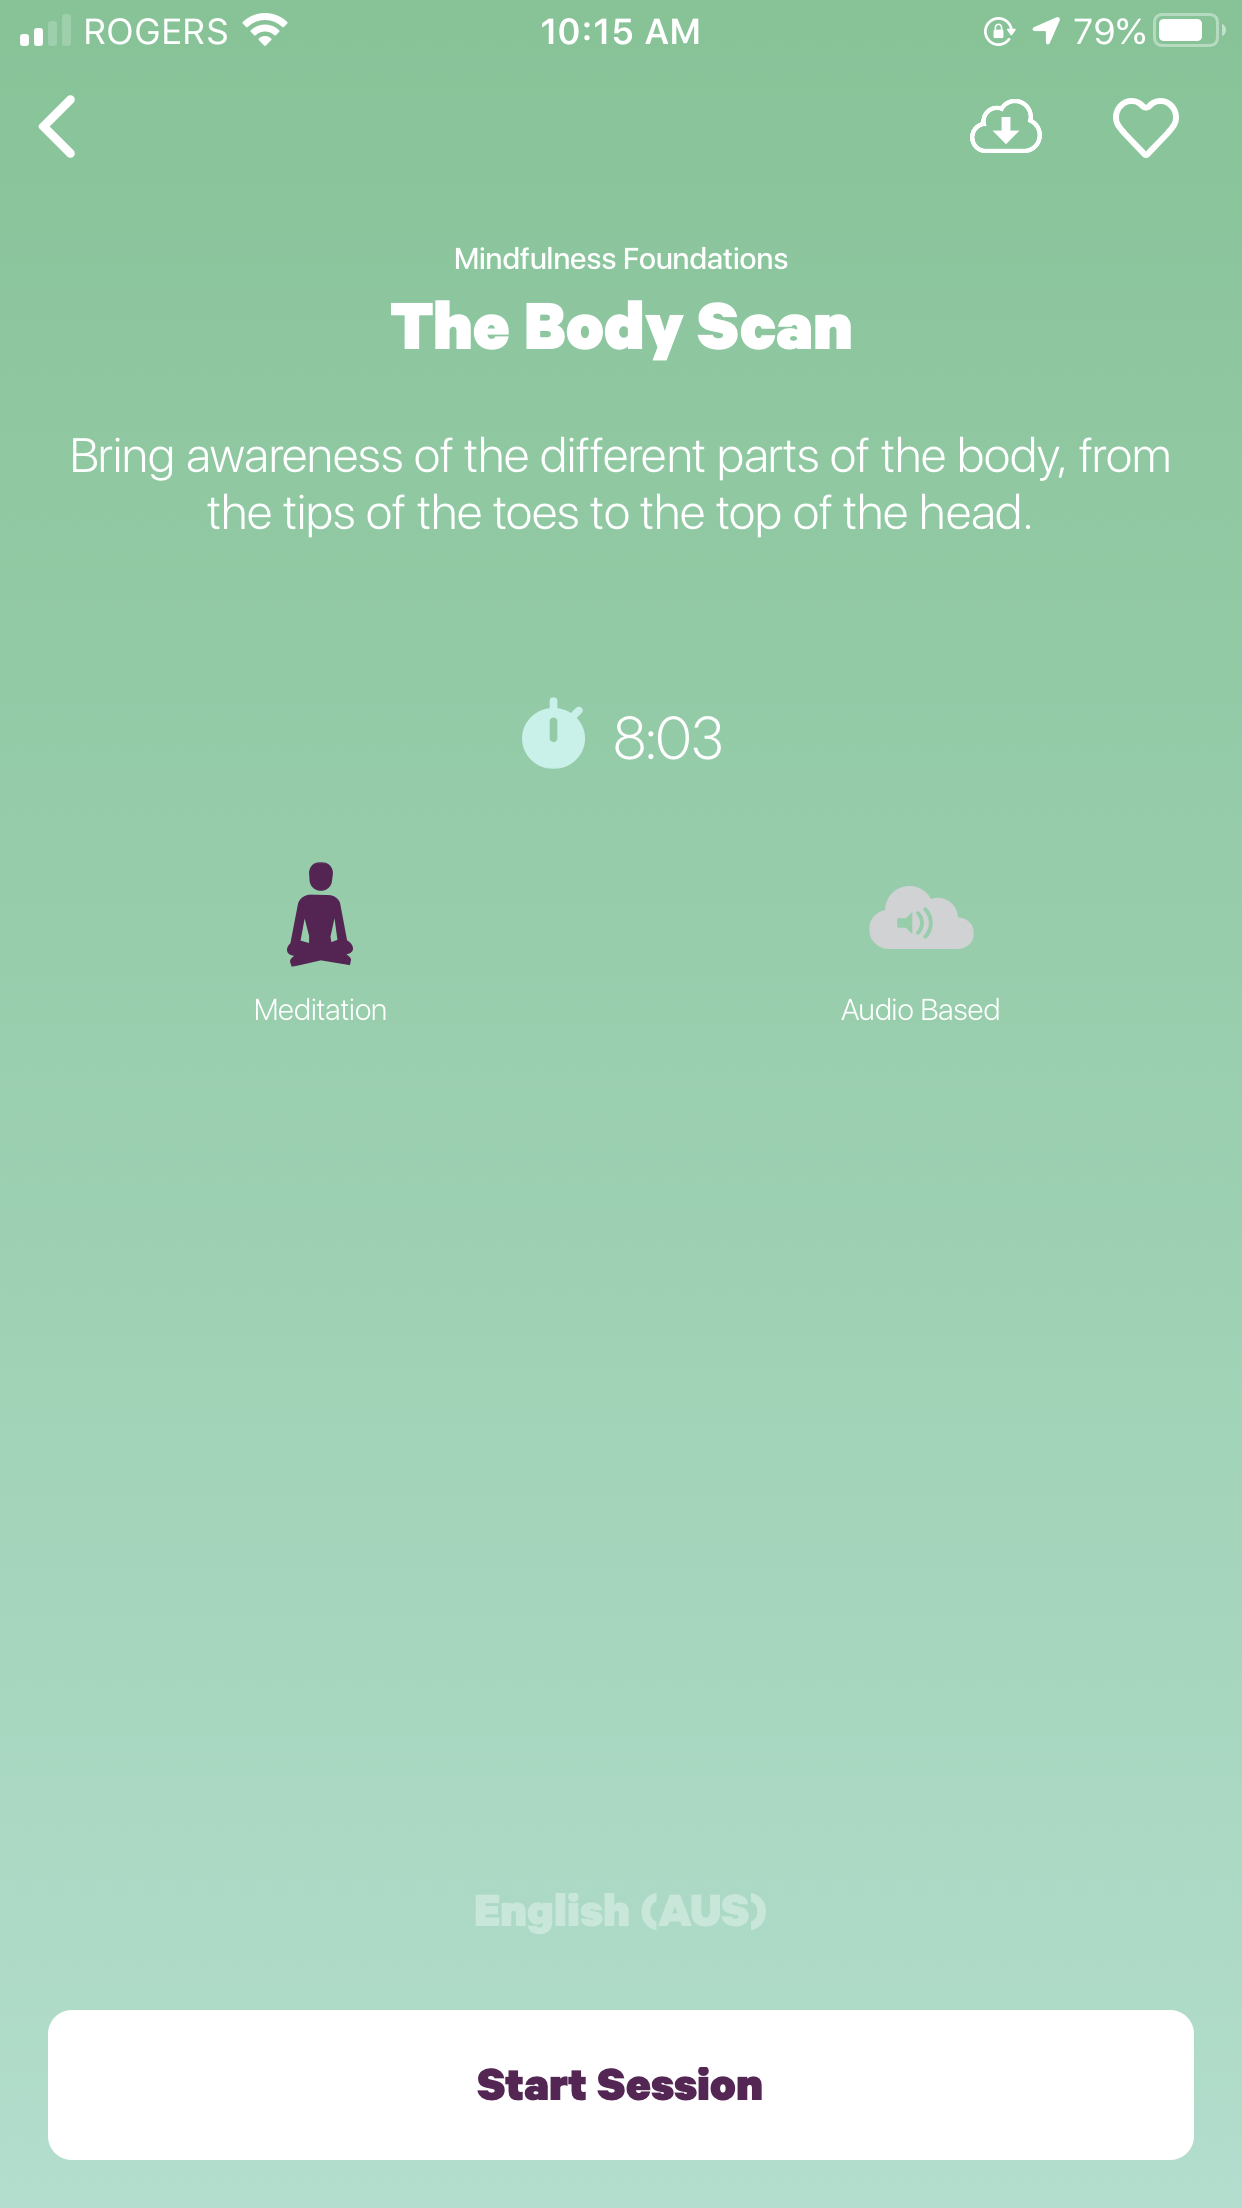 Smiling Mind app - The Body Scan